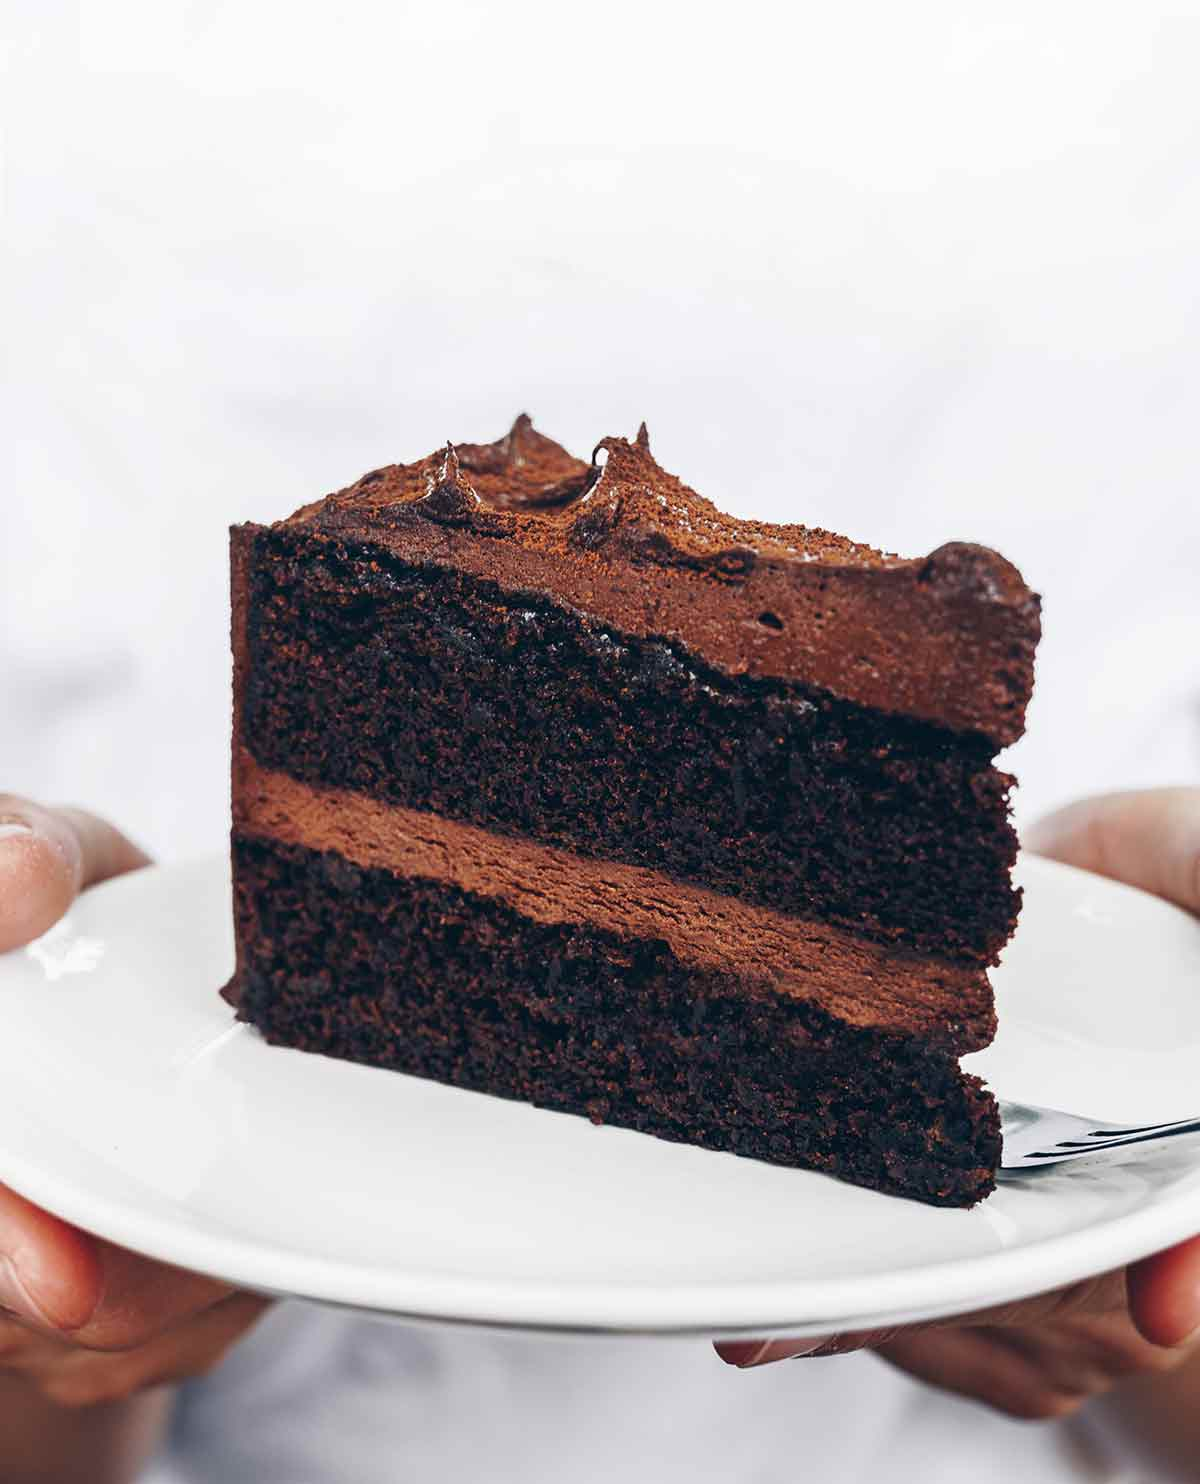 A person holding a plate with a slice of basic chocolate cake on it.